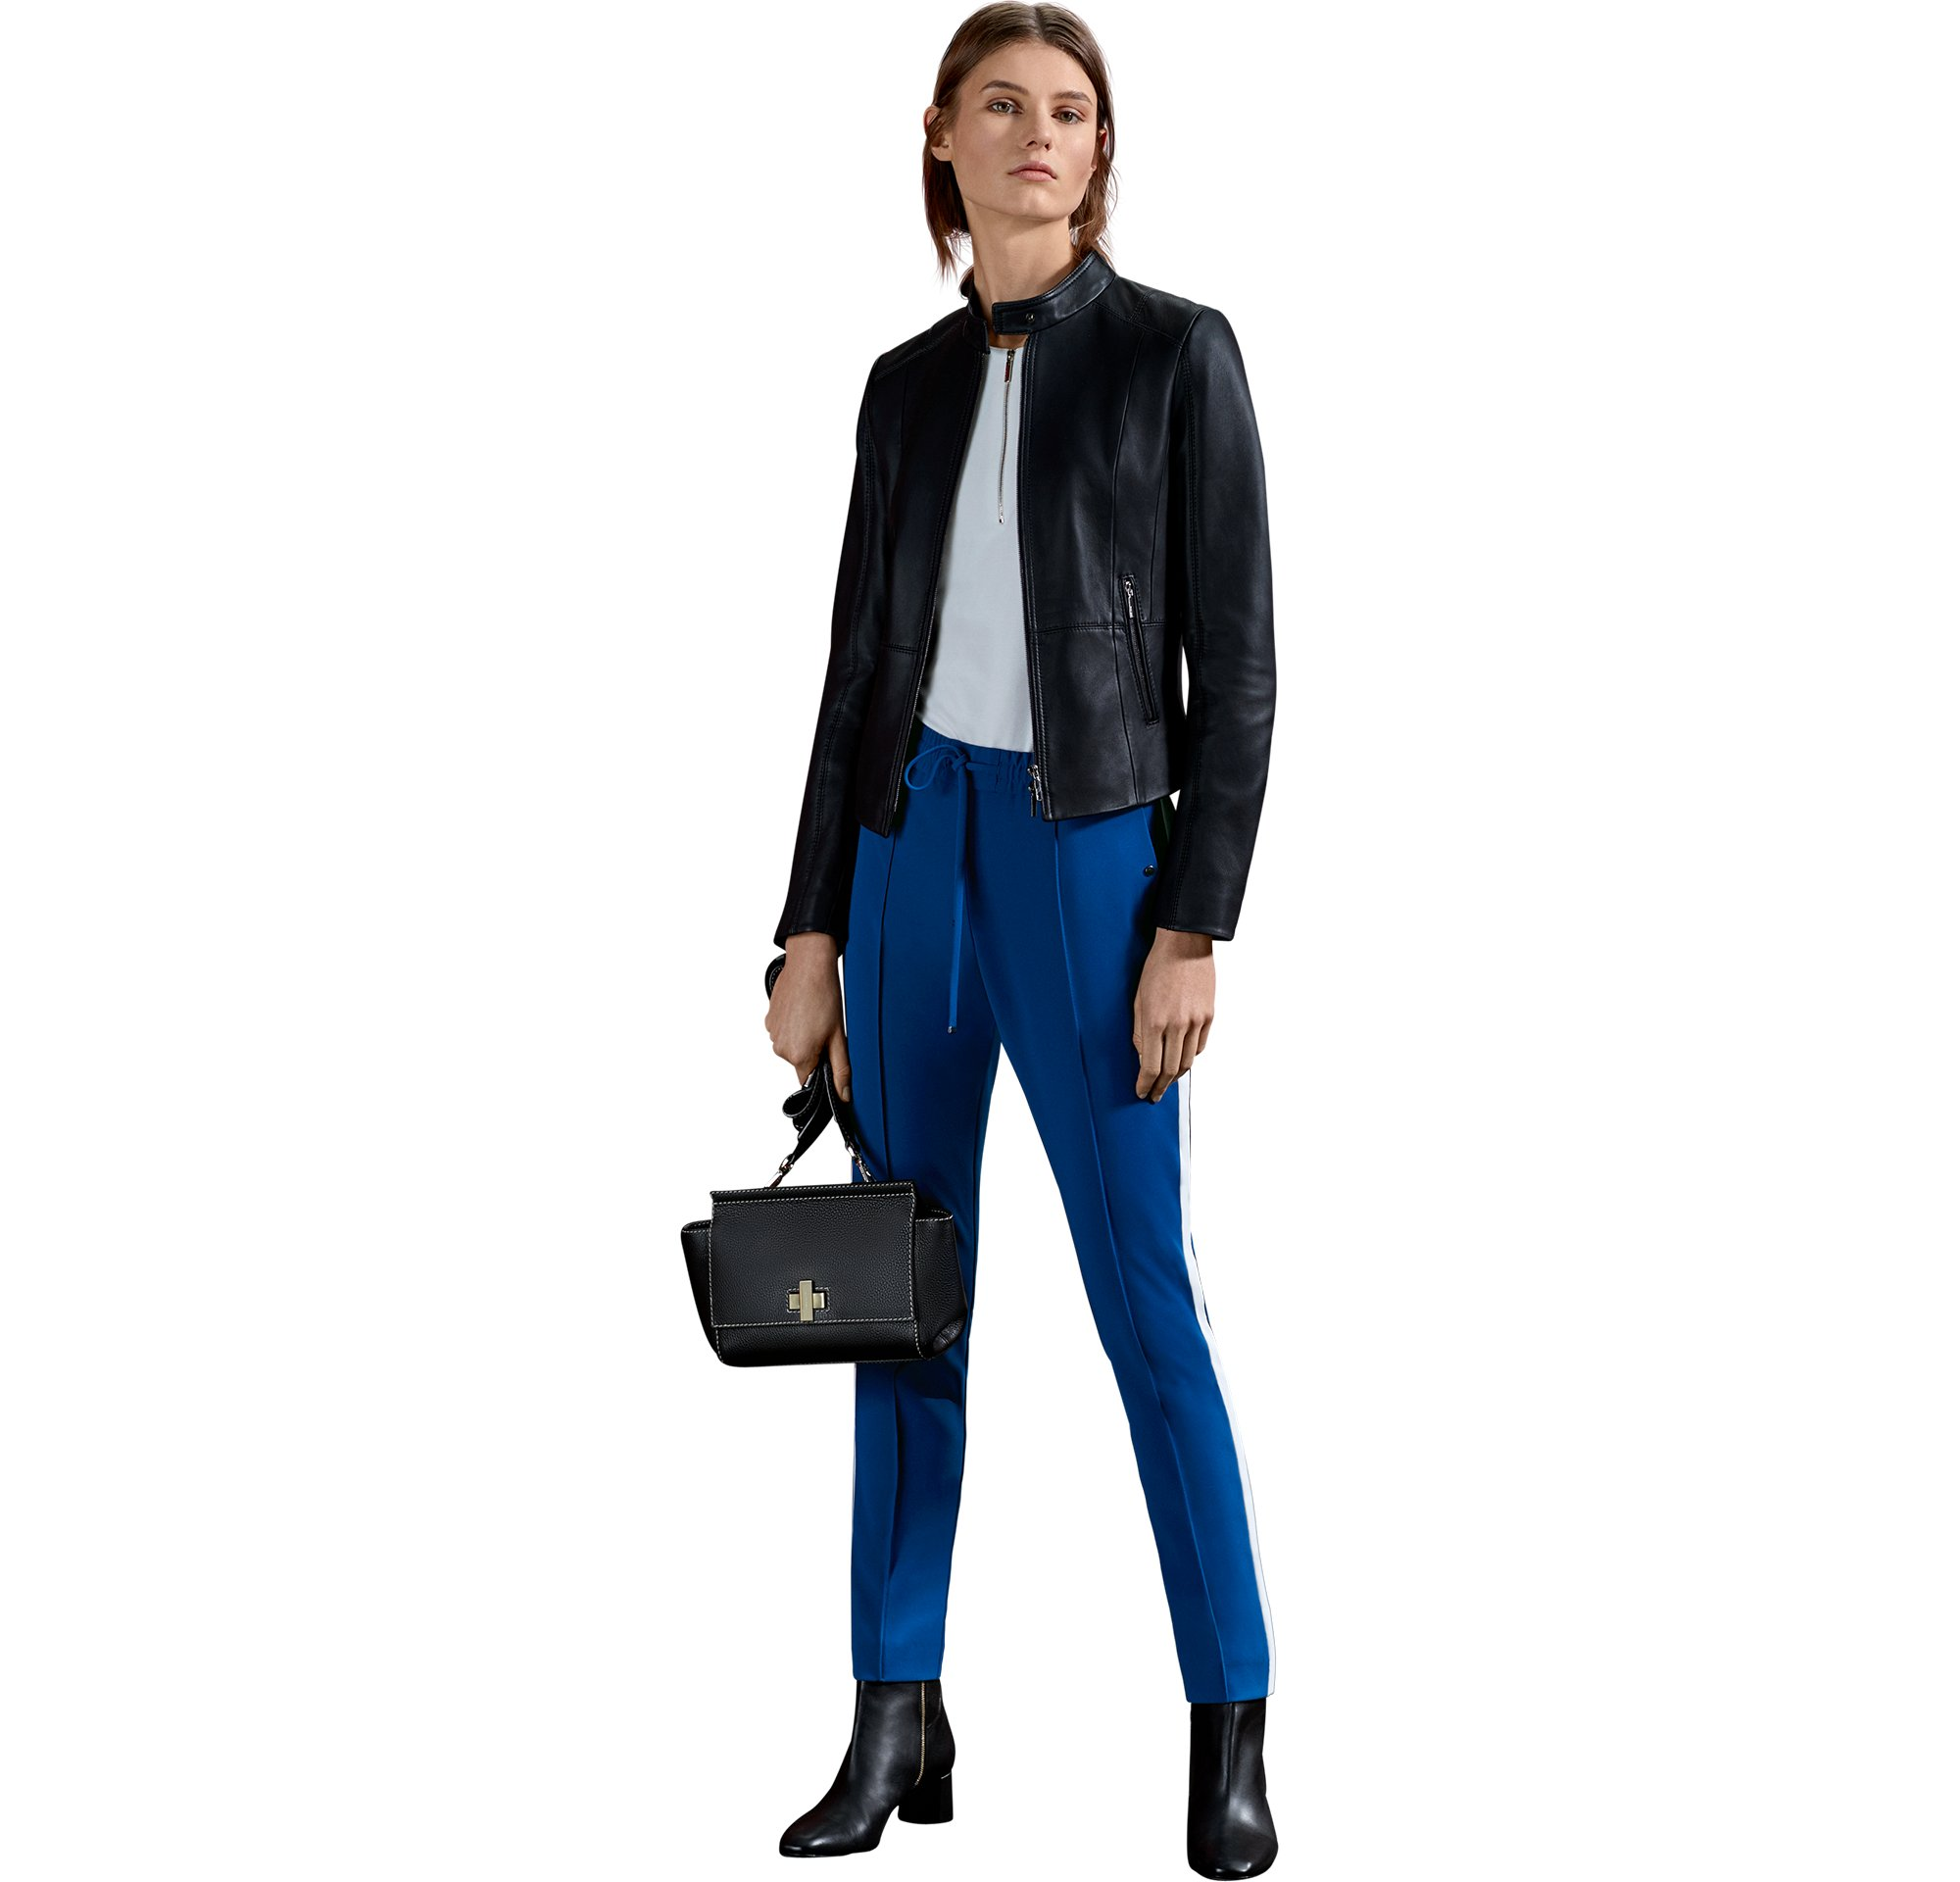 BOSS_Women_CTG_FW17_Look_2,